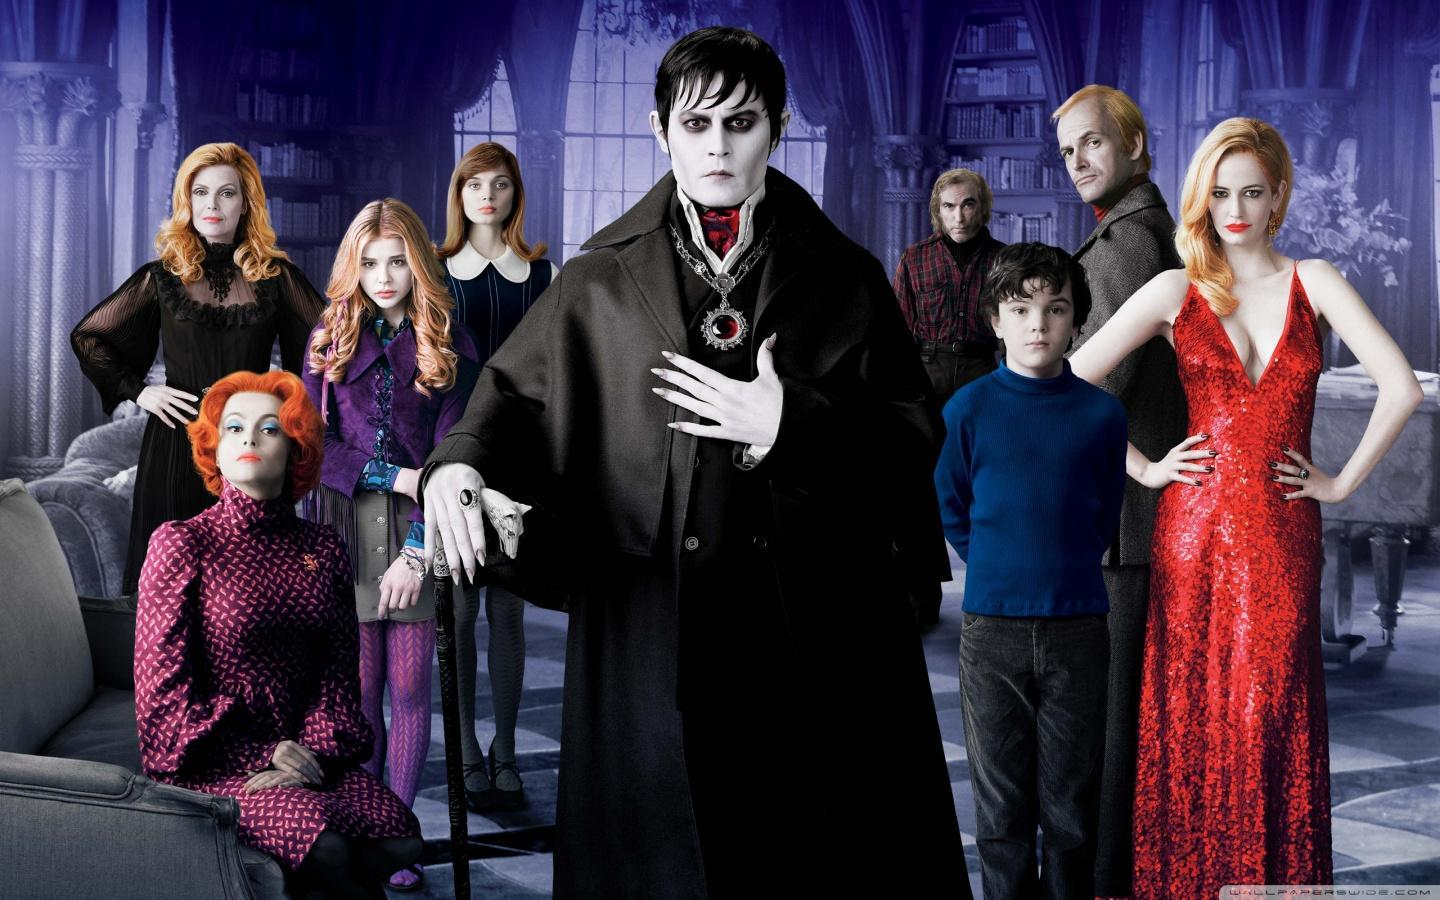 Which 2012 Dark Shadows character are you?